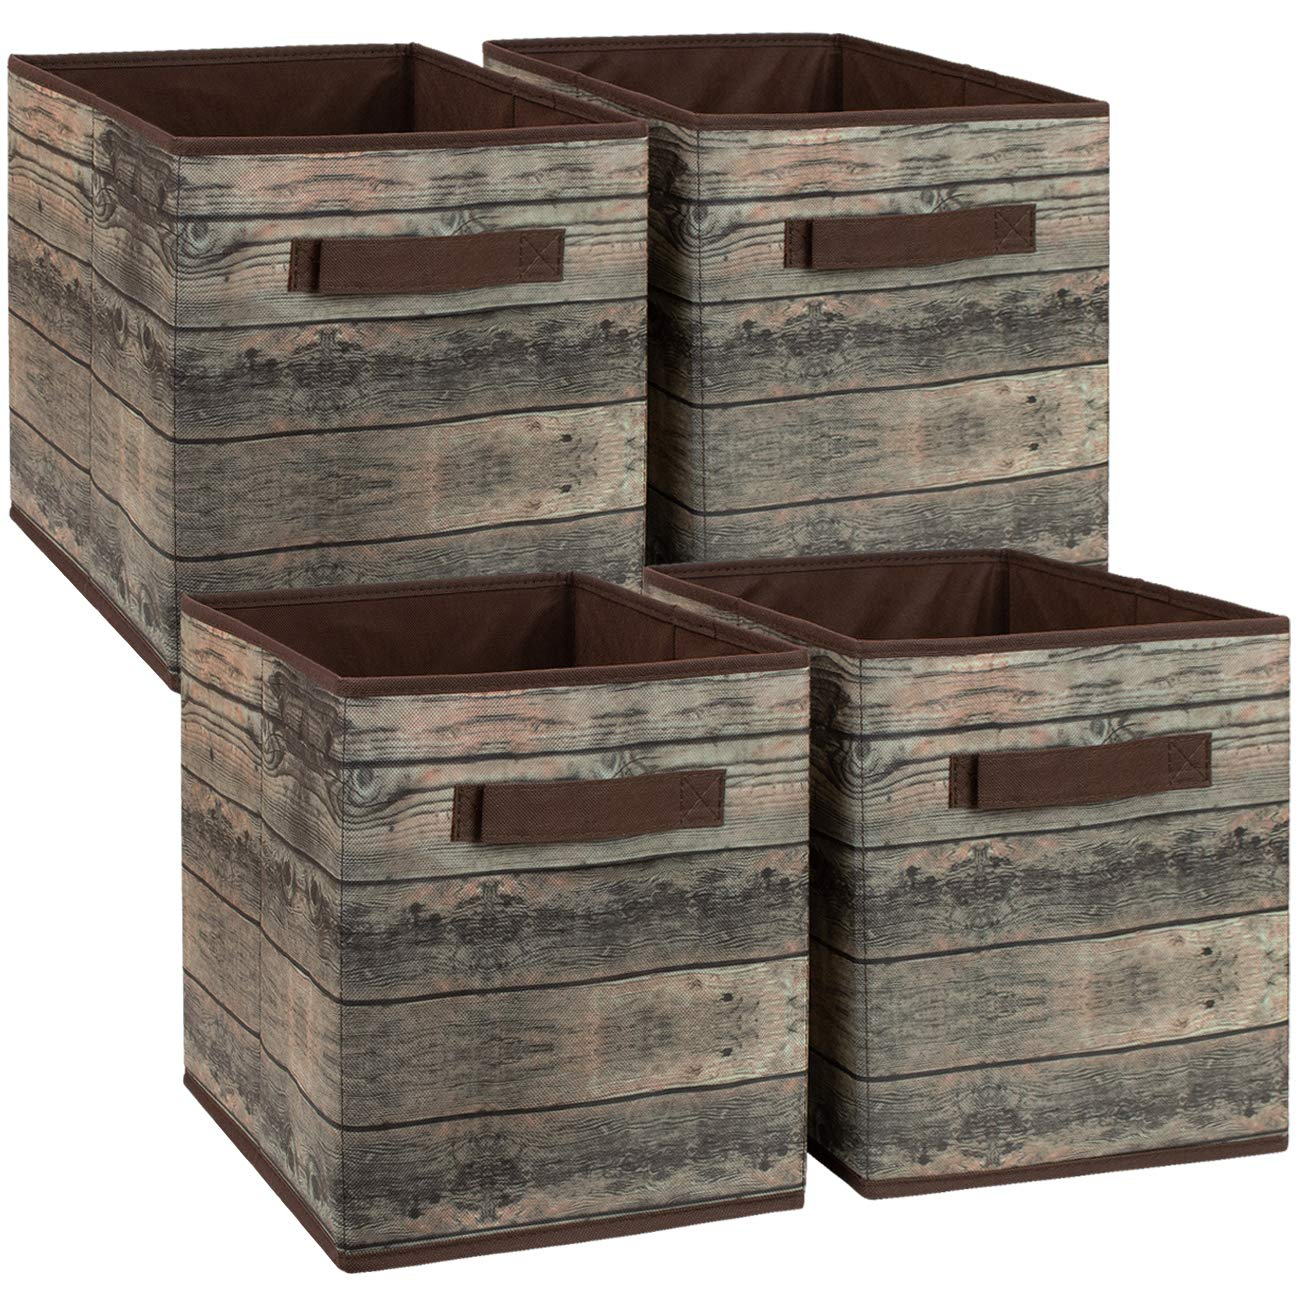 Sorbus Foldable Storage Cube Basket Bin, Rustic Wood Grain Print, 4-Pack (Rustic Bin - Brown) by Sorbus